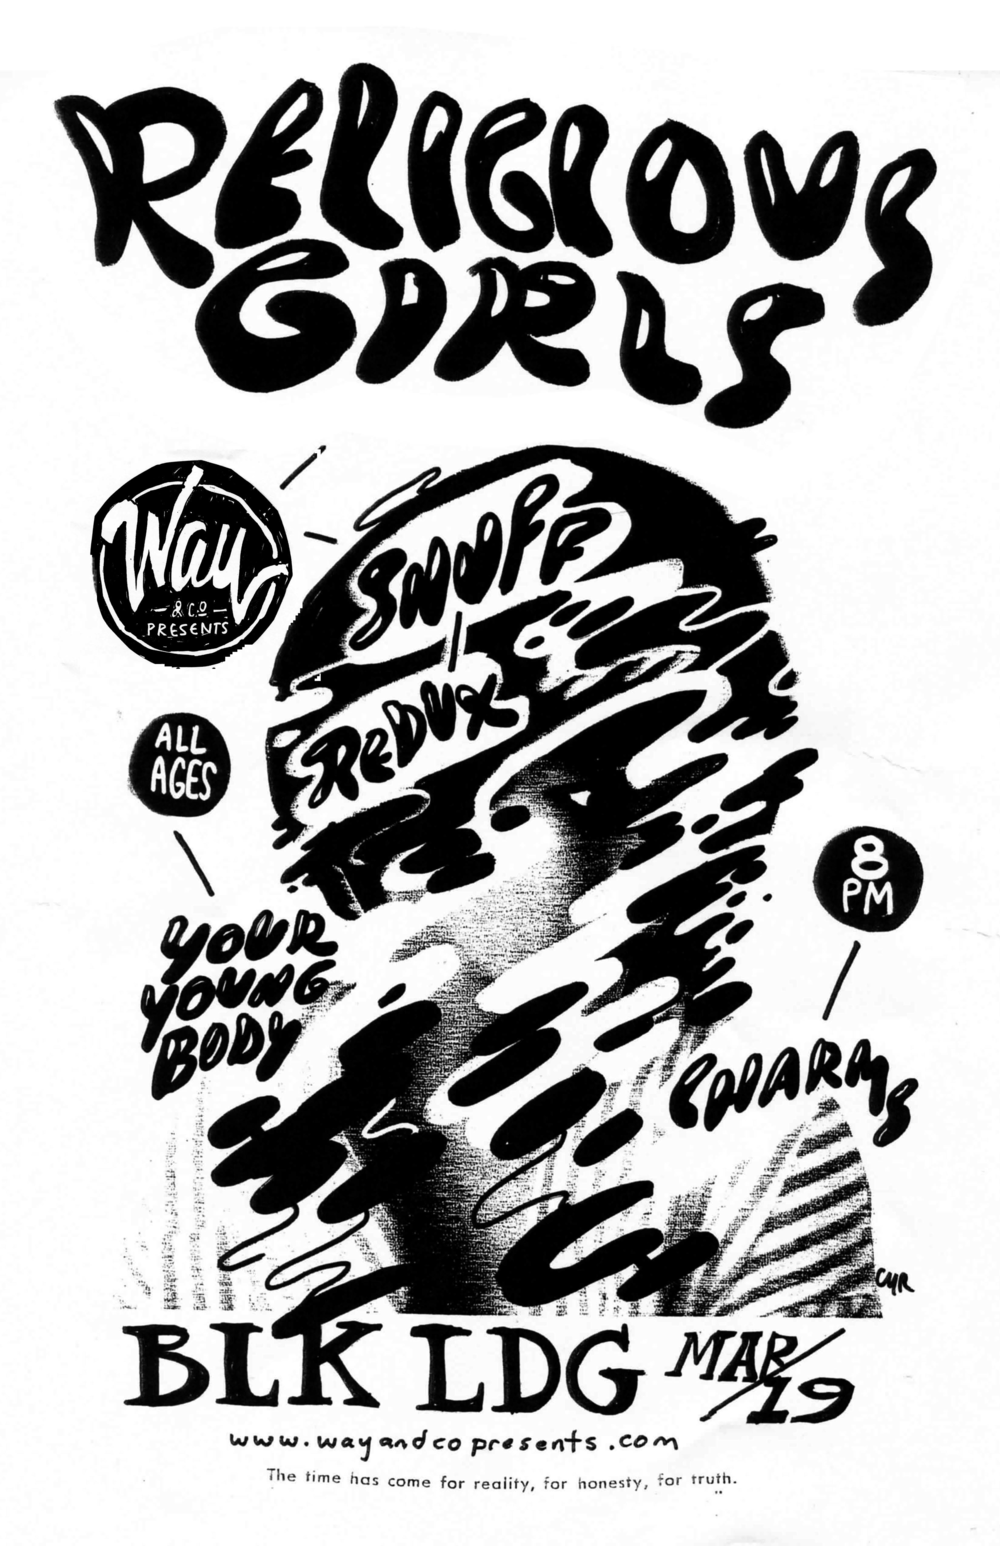 Religious Girls - Snuff Redux - Youryoungbody - Charms - 3.19 at Black Lodge - Way & Co show poster.png